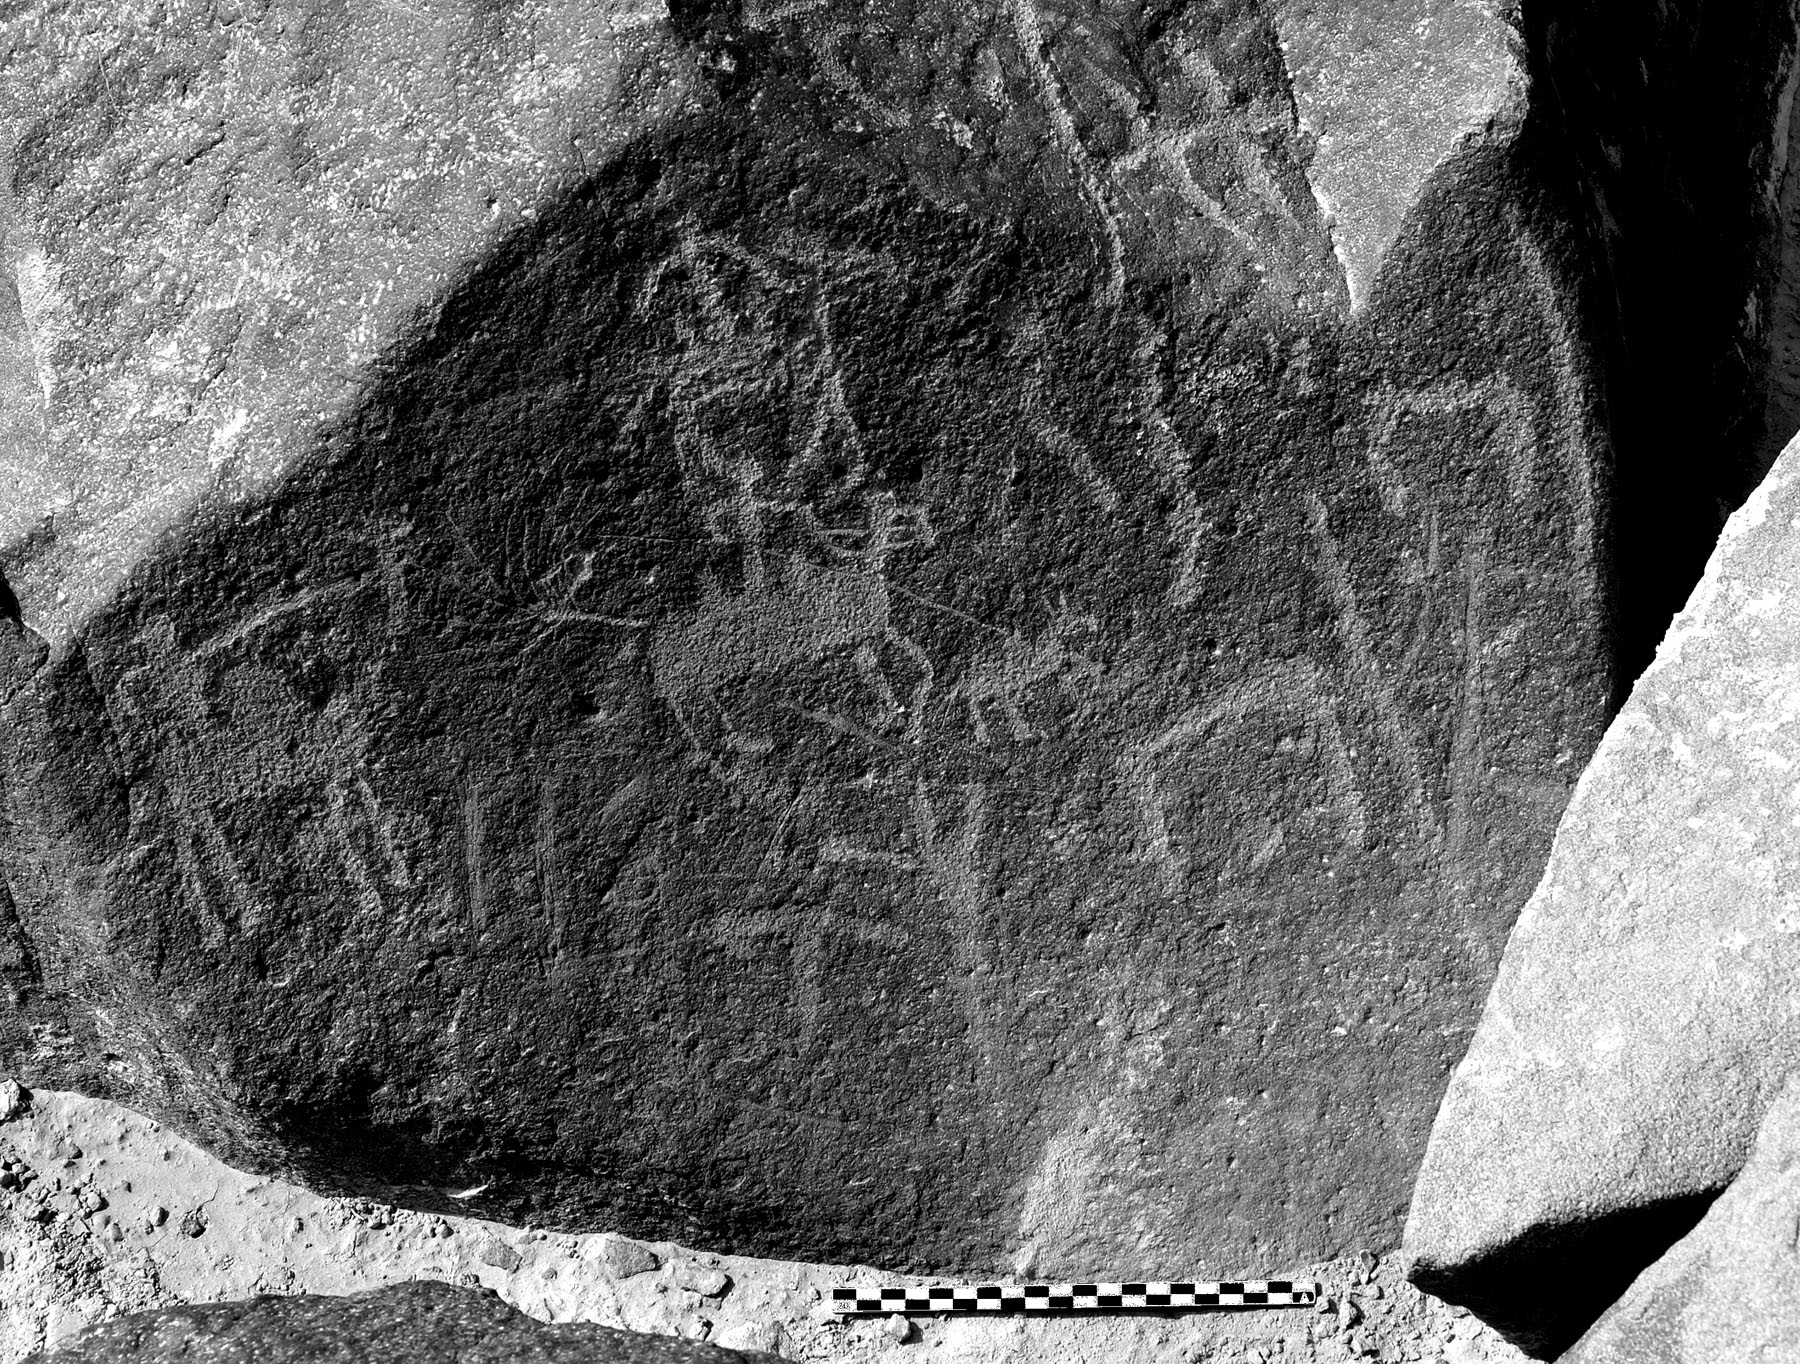 Fig. 1. Safaitic rock art from Jabal Qurma (site QUR-2, RA184), showing hunters on horses and camels. Dated between the first century B.C.E. and the fourth century C.E. (courtesy Jabal Qurma Archaeological Landscape Project).